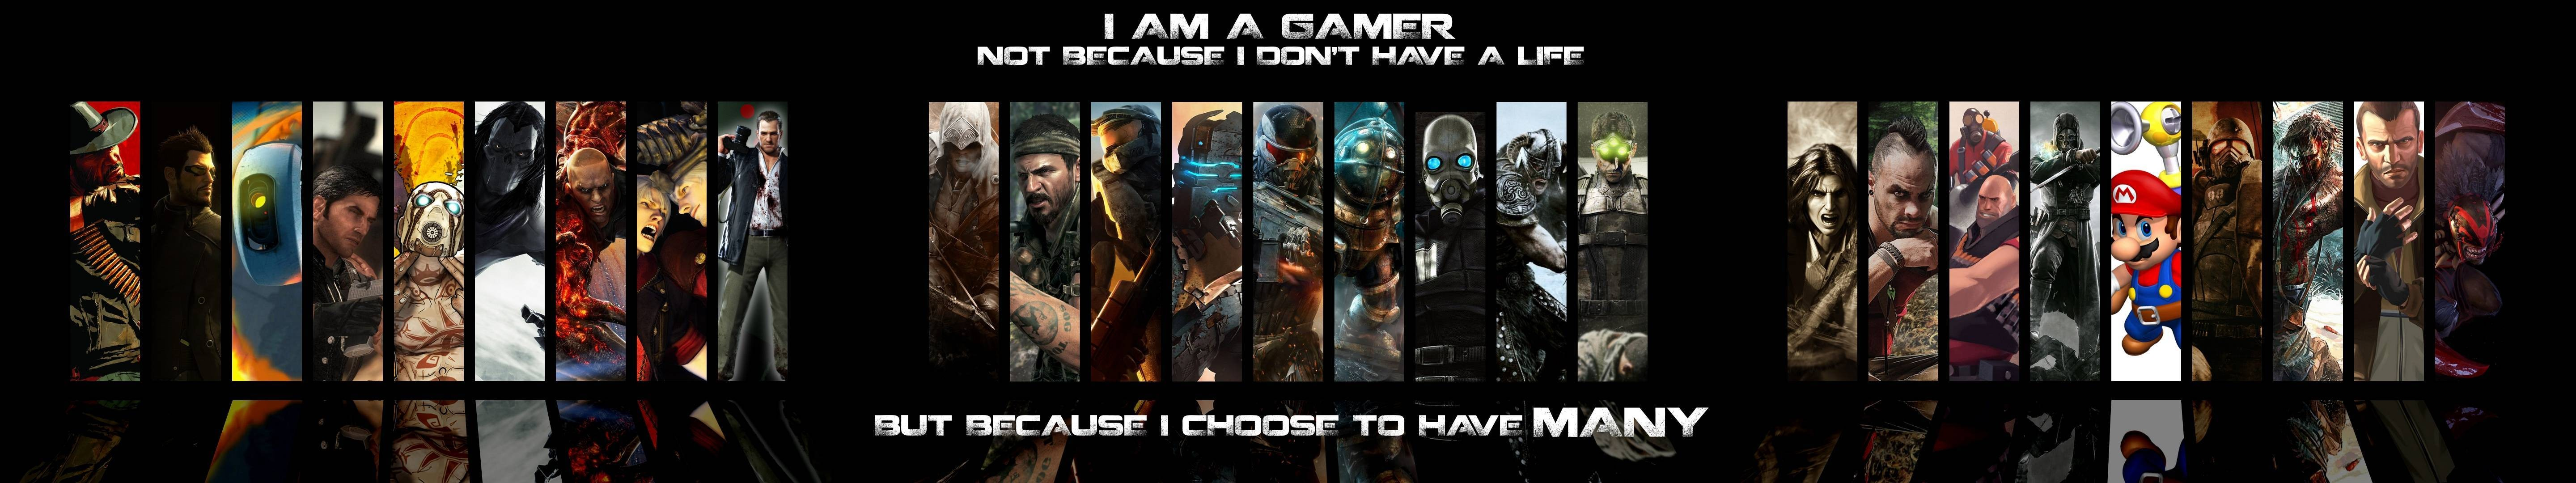 General 5760x1080 video games Team Fortress 2 Halo Half-Life 2 Crysis Assassin's Creed Portal (game) Master Chief Dota 2 collage PC gaming Darksiders 2 Dead Space Devil May Cry Splinter Cell BioShock Mario (Character Dishonored Fallout Grand Theft Auto IV